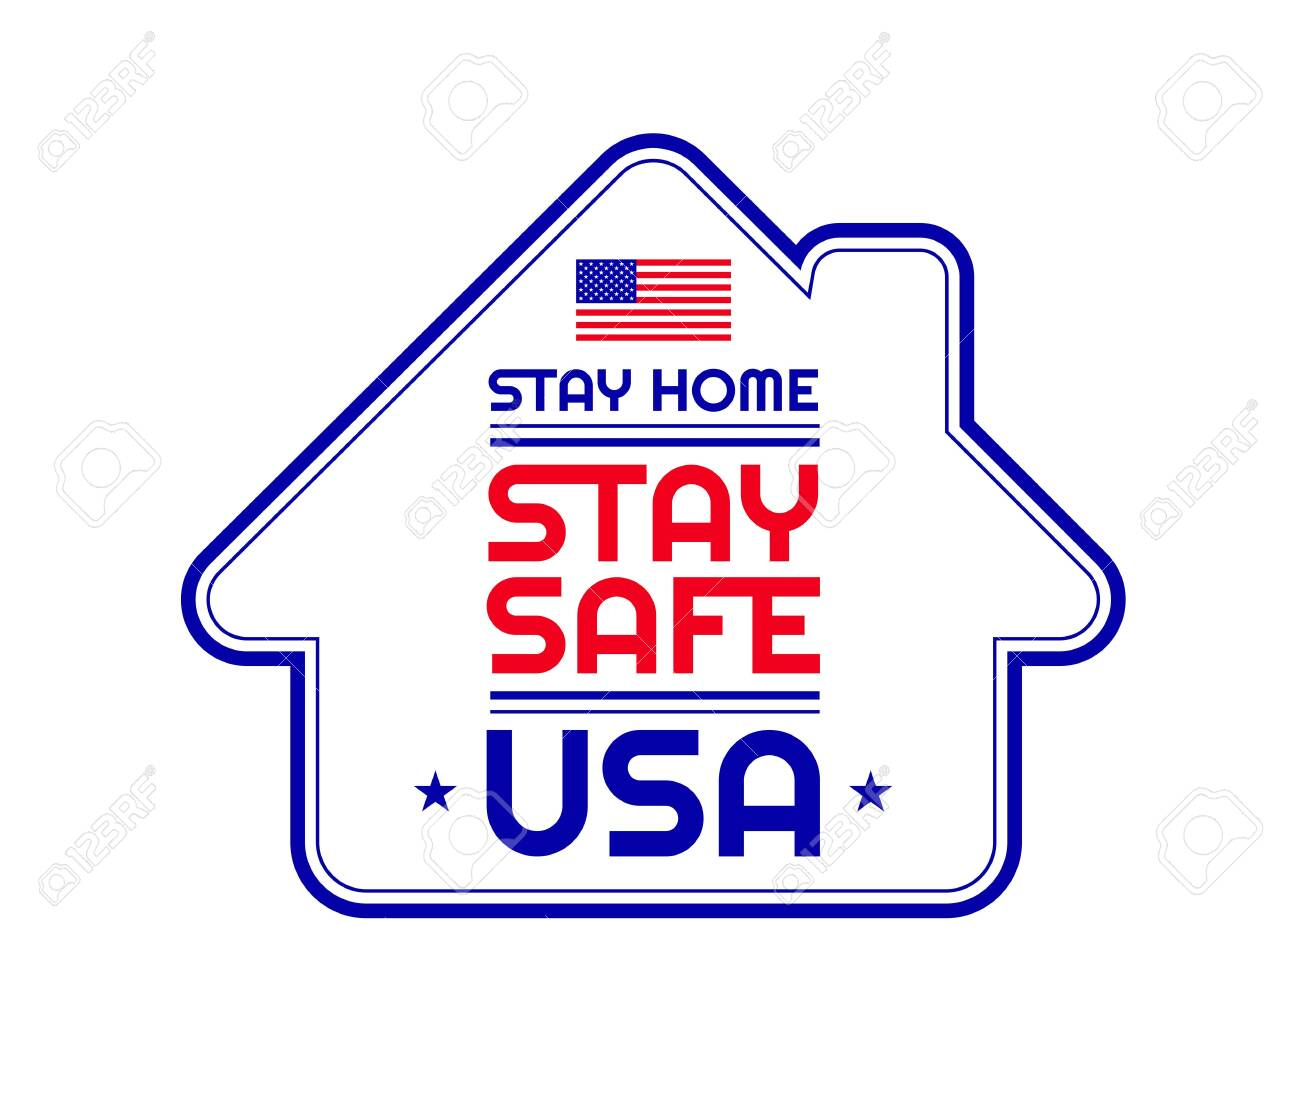 Patriotic quote Stay safe, Stay Home, USA. Template sign for background, banner, poster. illustration for United States - 147504672